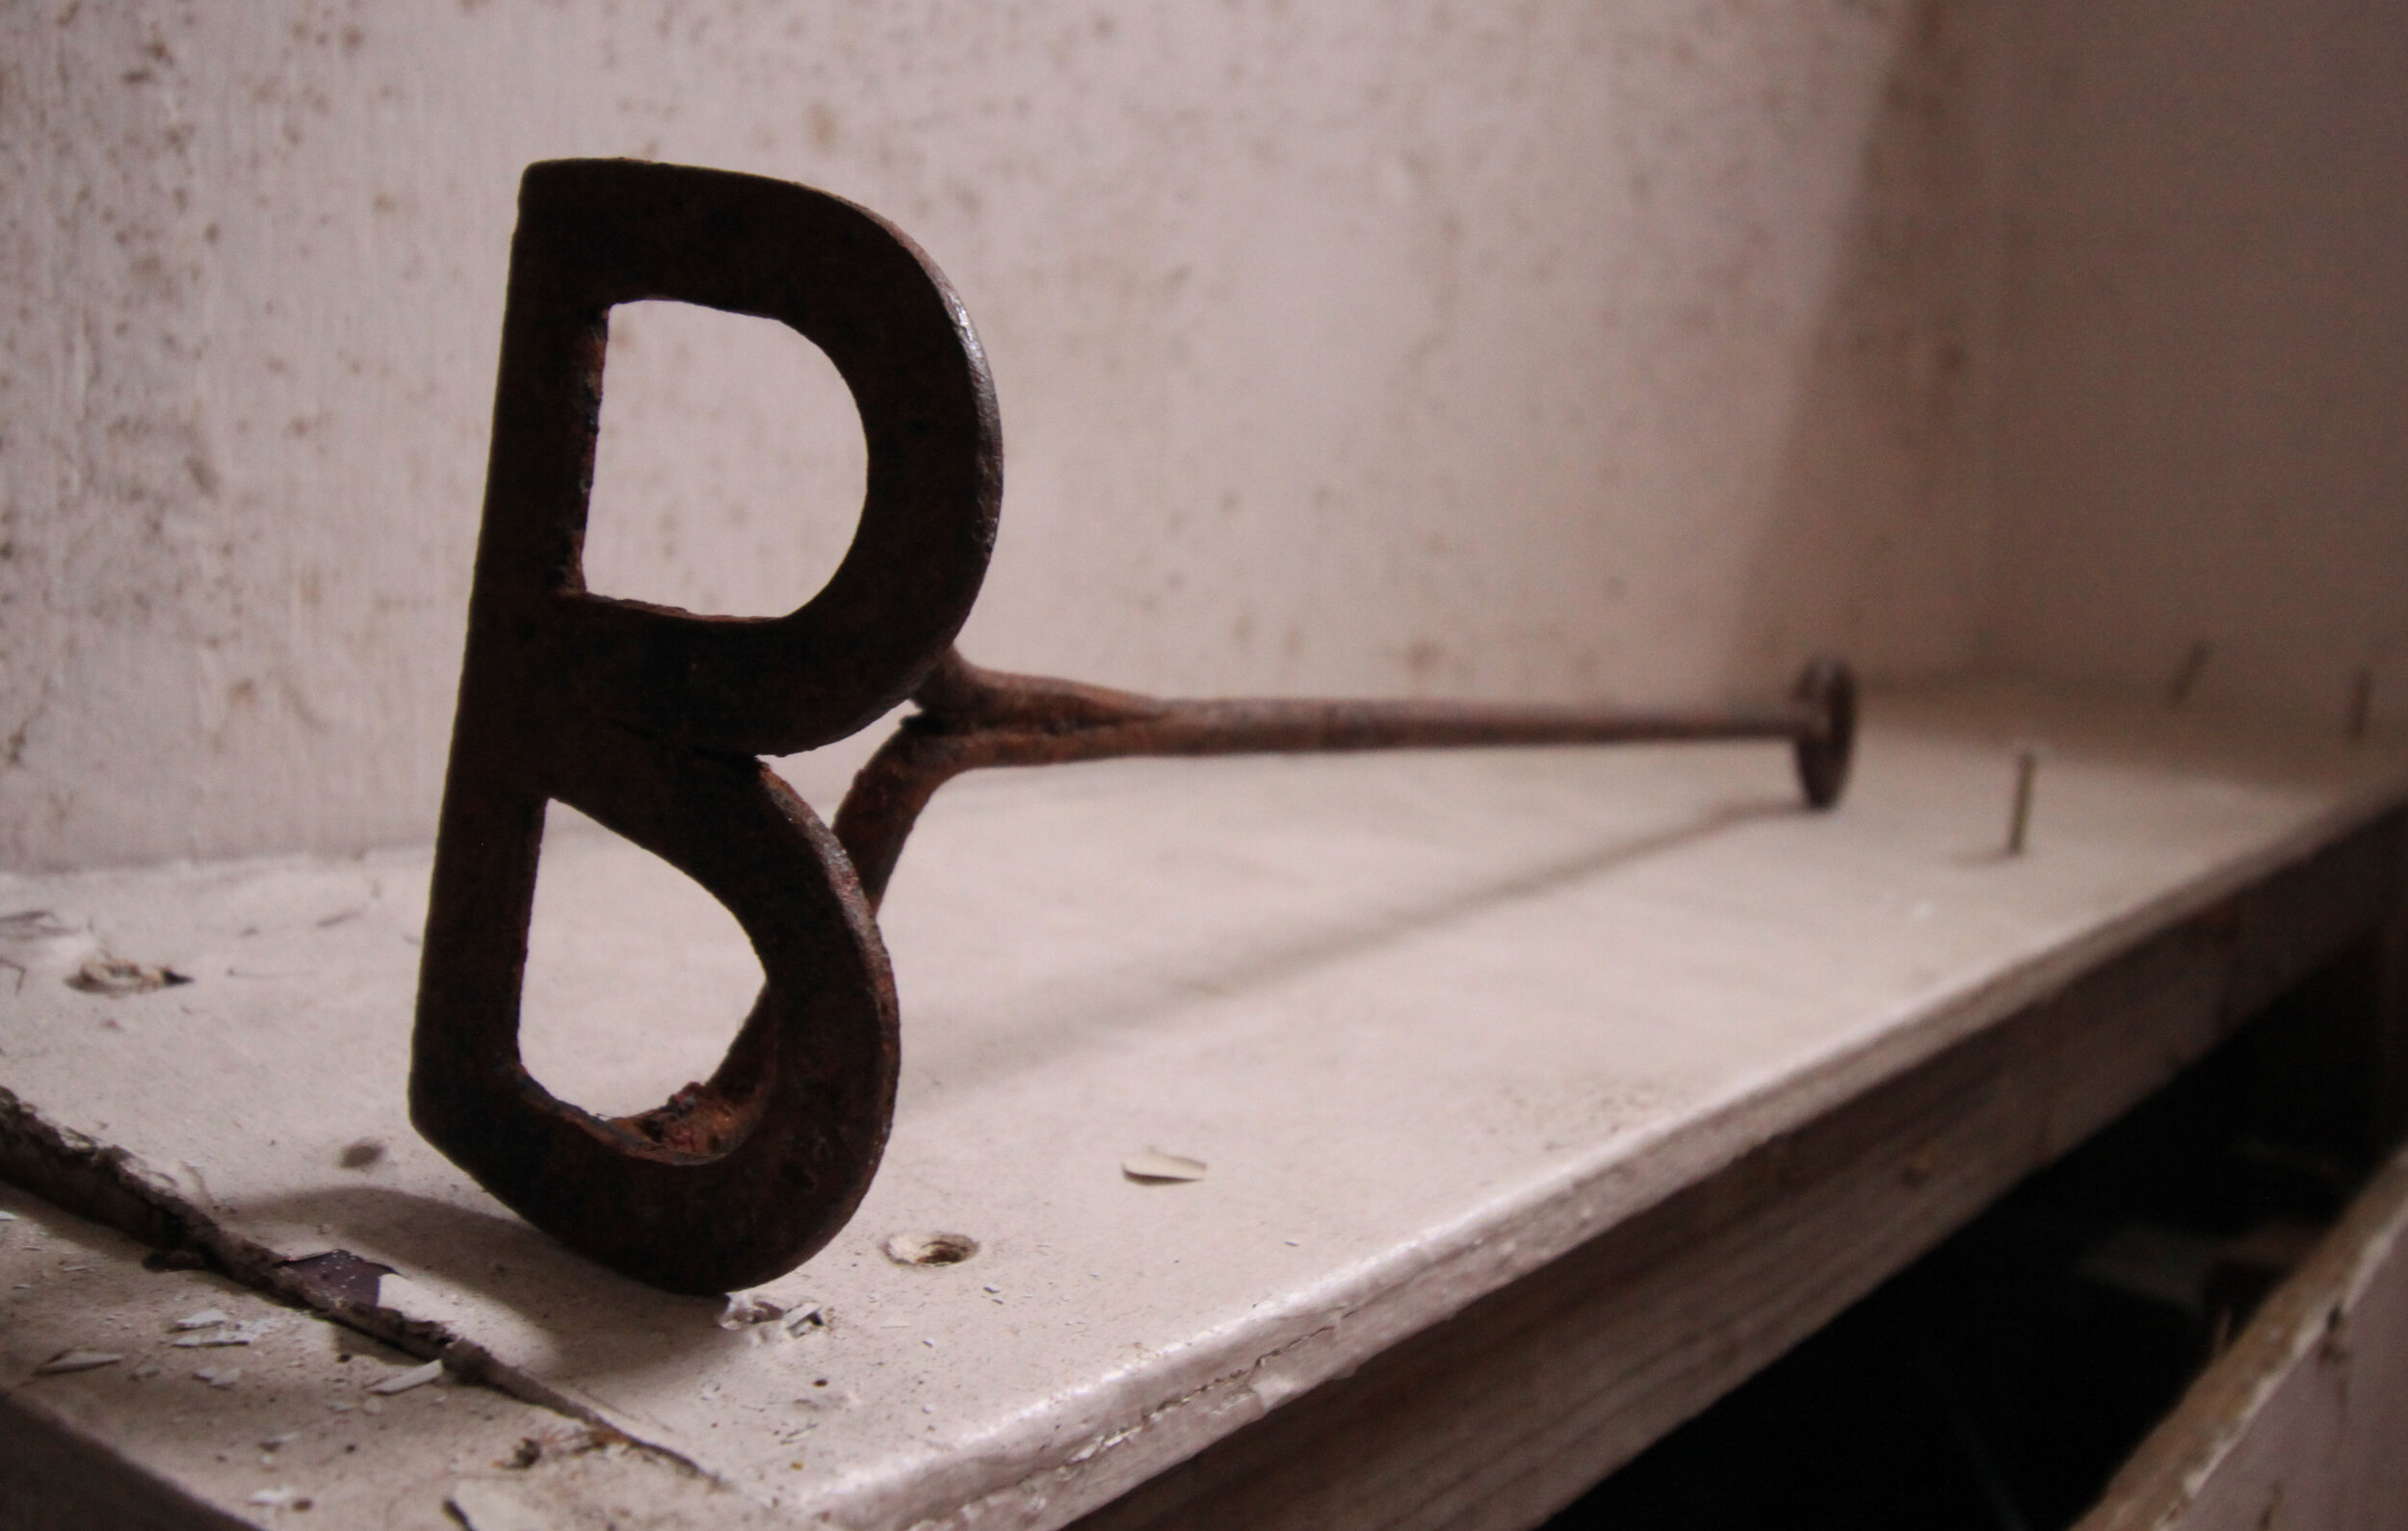 B Branding iron. Photo by Dave Cable.SMP (59).JPG